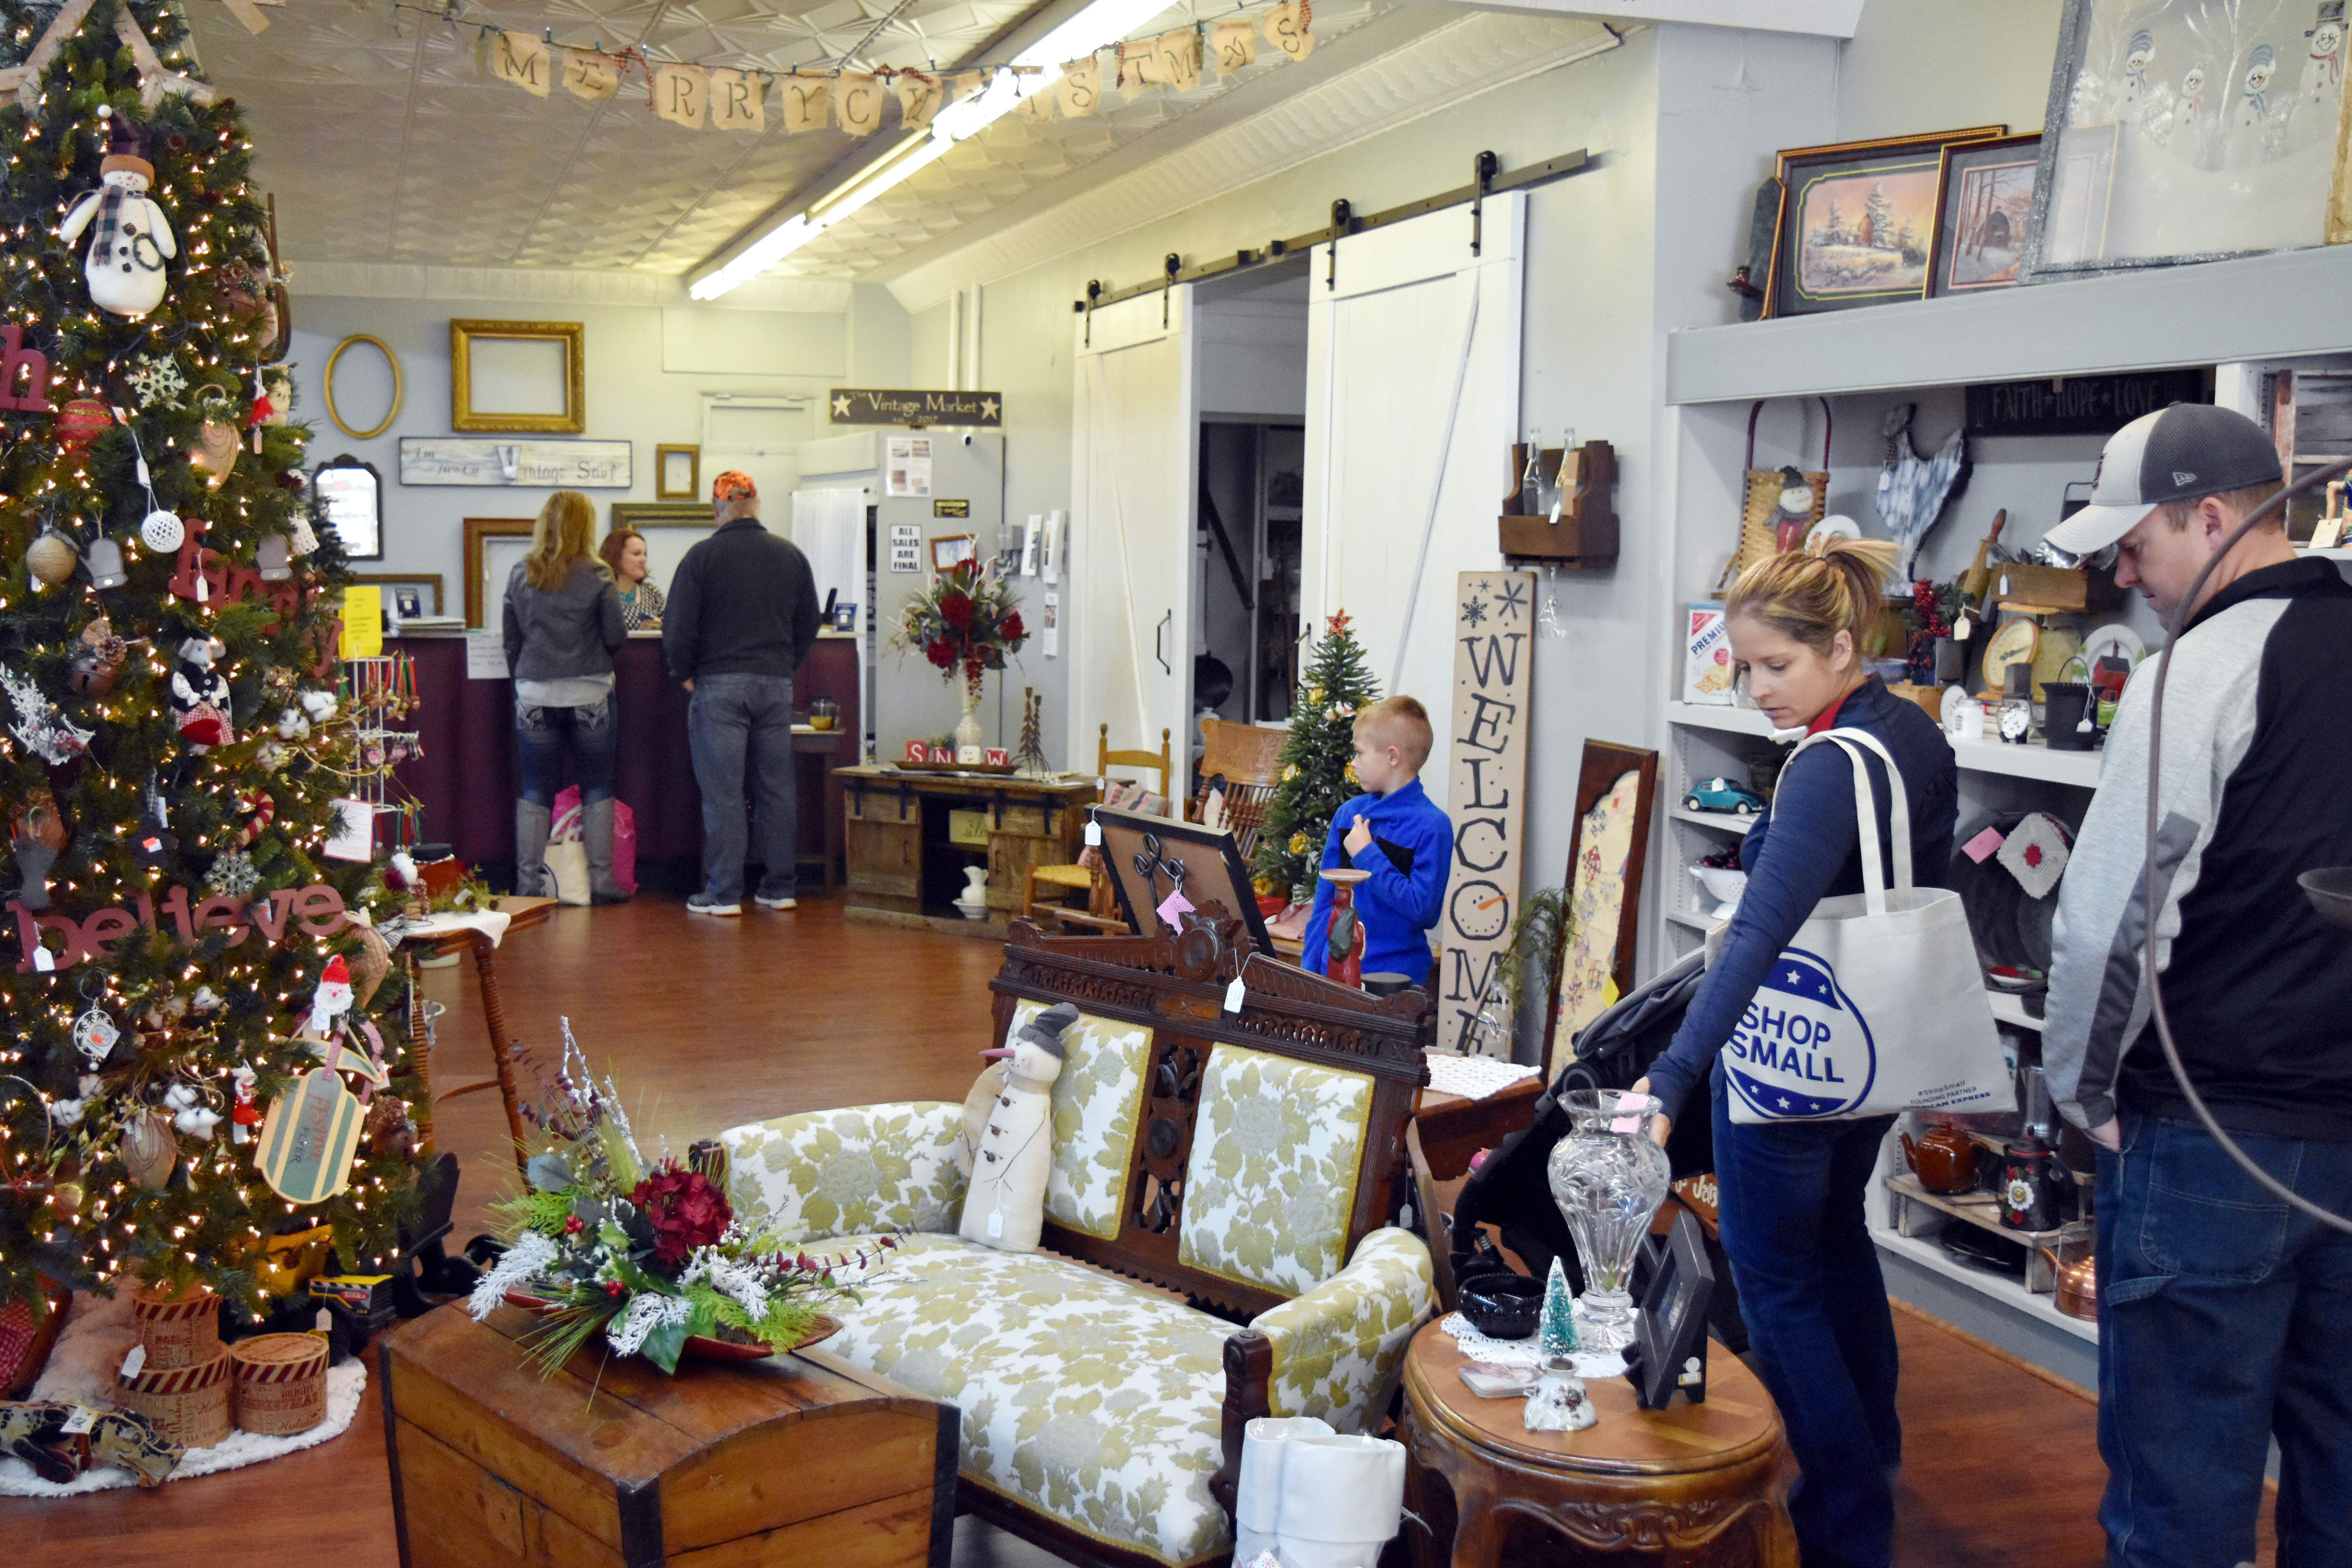 Shoppers view the items for sale at Vintage Market during Small Business Saturday on Nov. 25. The Chester Chamber of Commerce and River City Renewal, Inc., partnered together with city businesses to observe the holiday event.